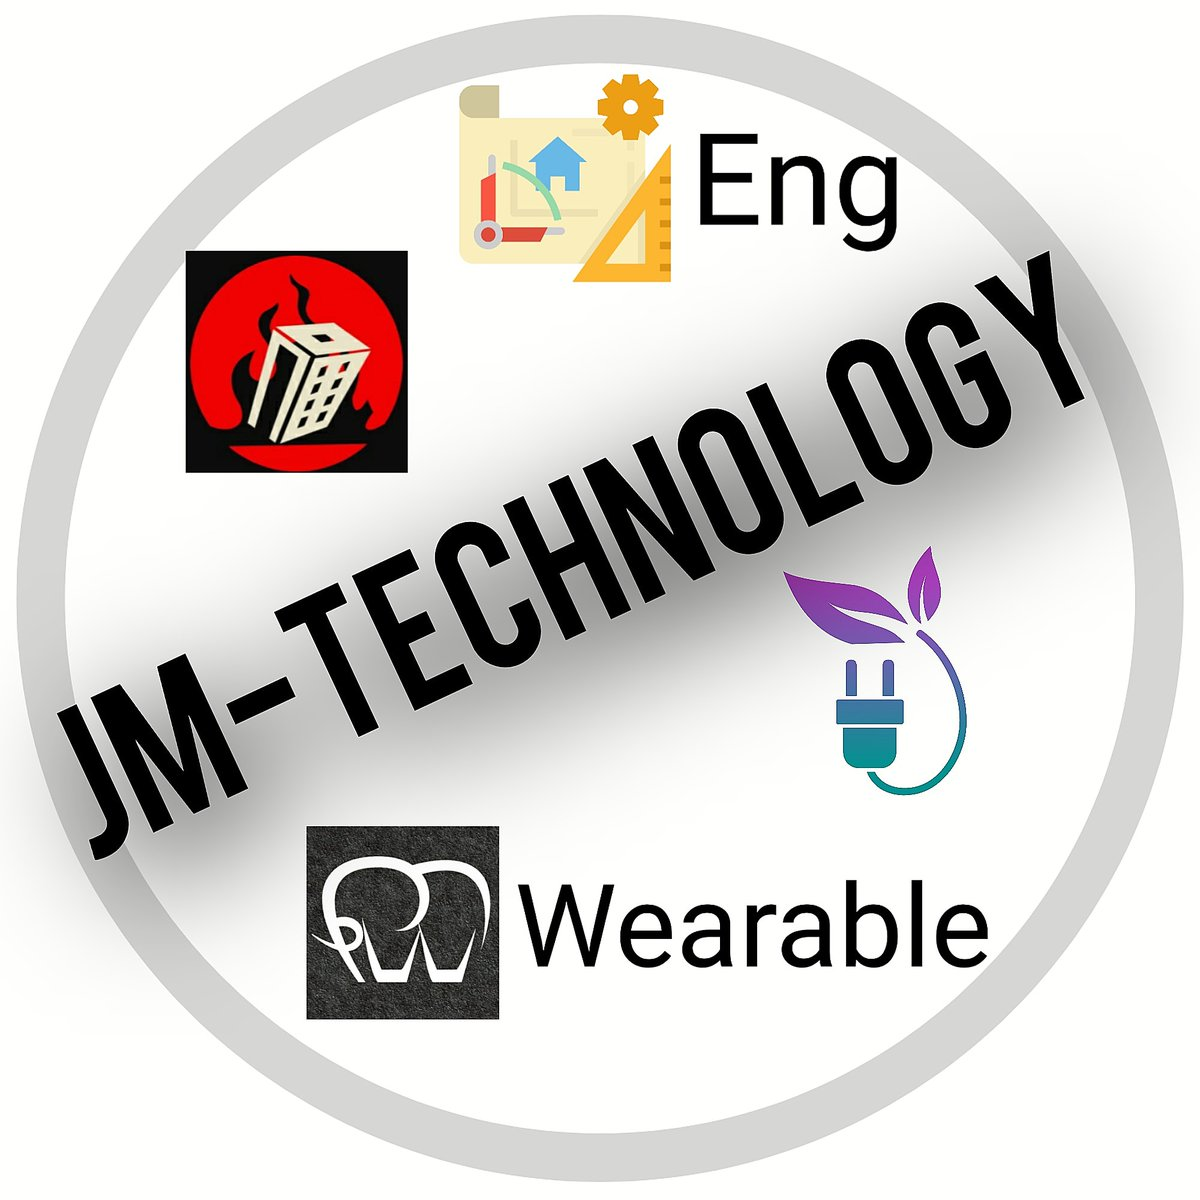 JM-Technology plans   Disasters prevention item,    Environment sensor,    Wearable devices,    Engineering services. https://t.co/L91MZFioyC